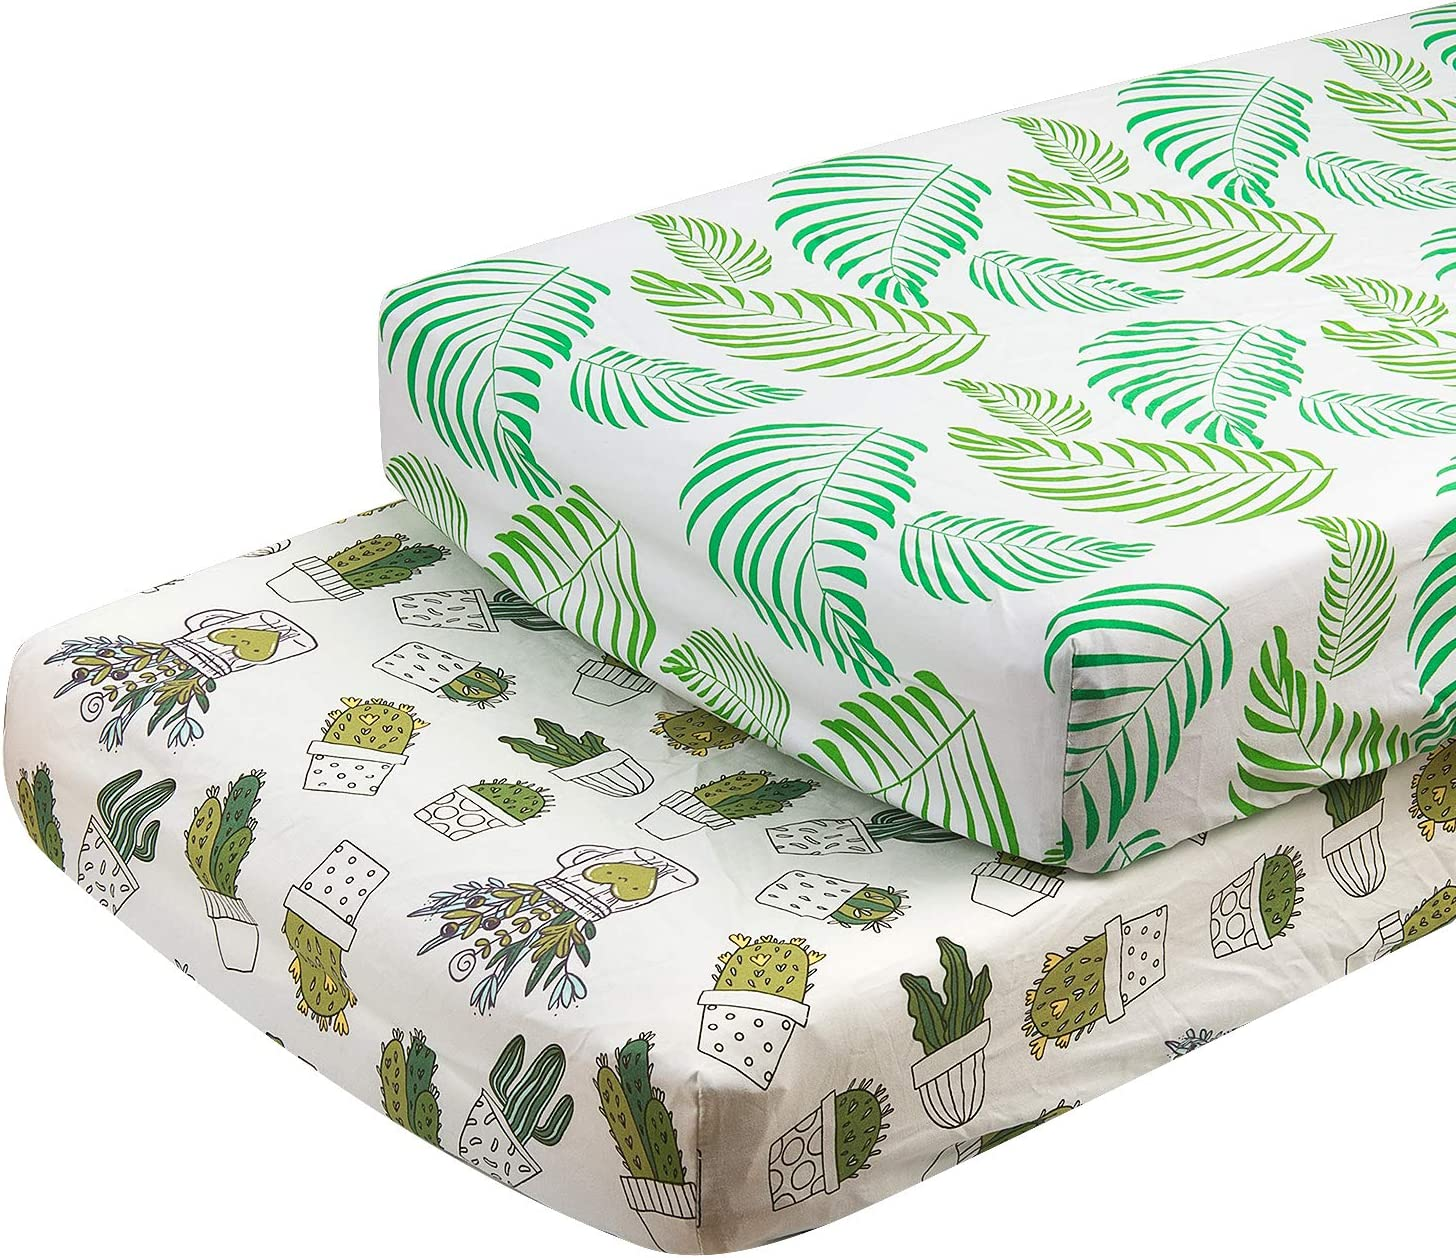 ALVABABY Cradle Mattress 100/% Organic Cotton Soft and Light Baby Changing Pad Cover for Boys and Girls Cactus and avocado 2TWCZ09-CA